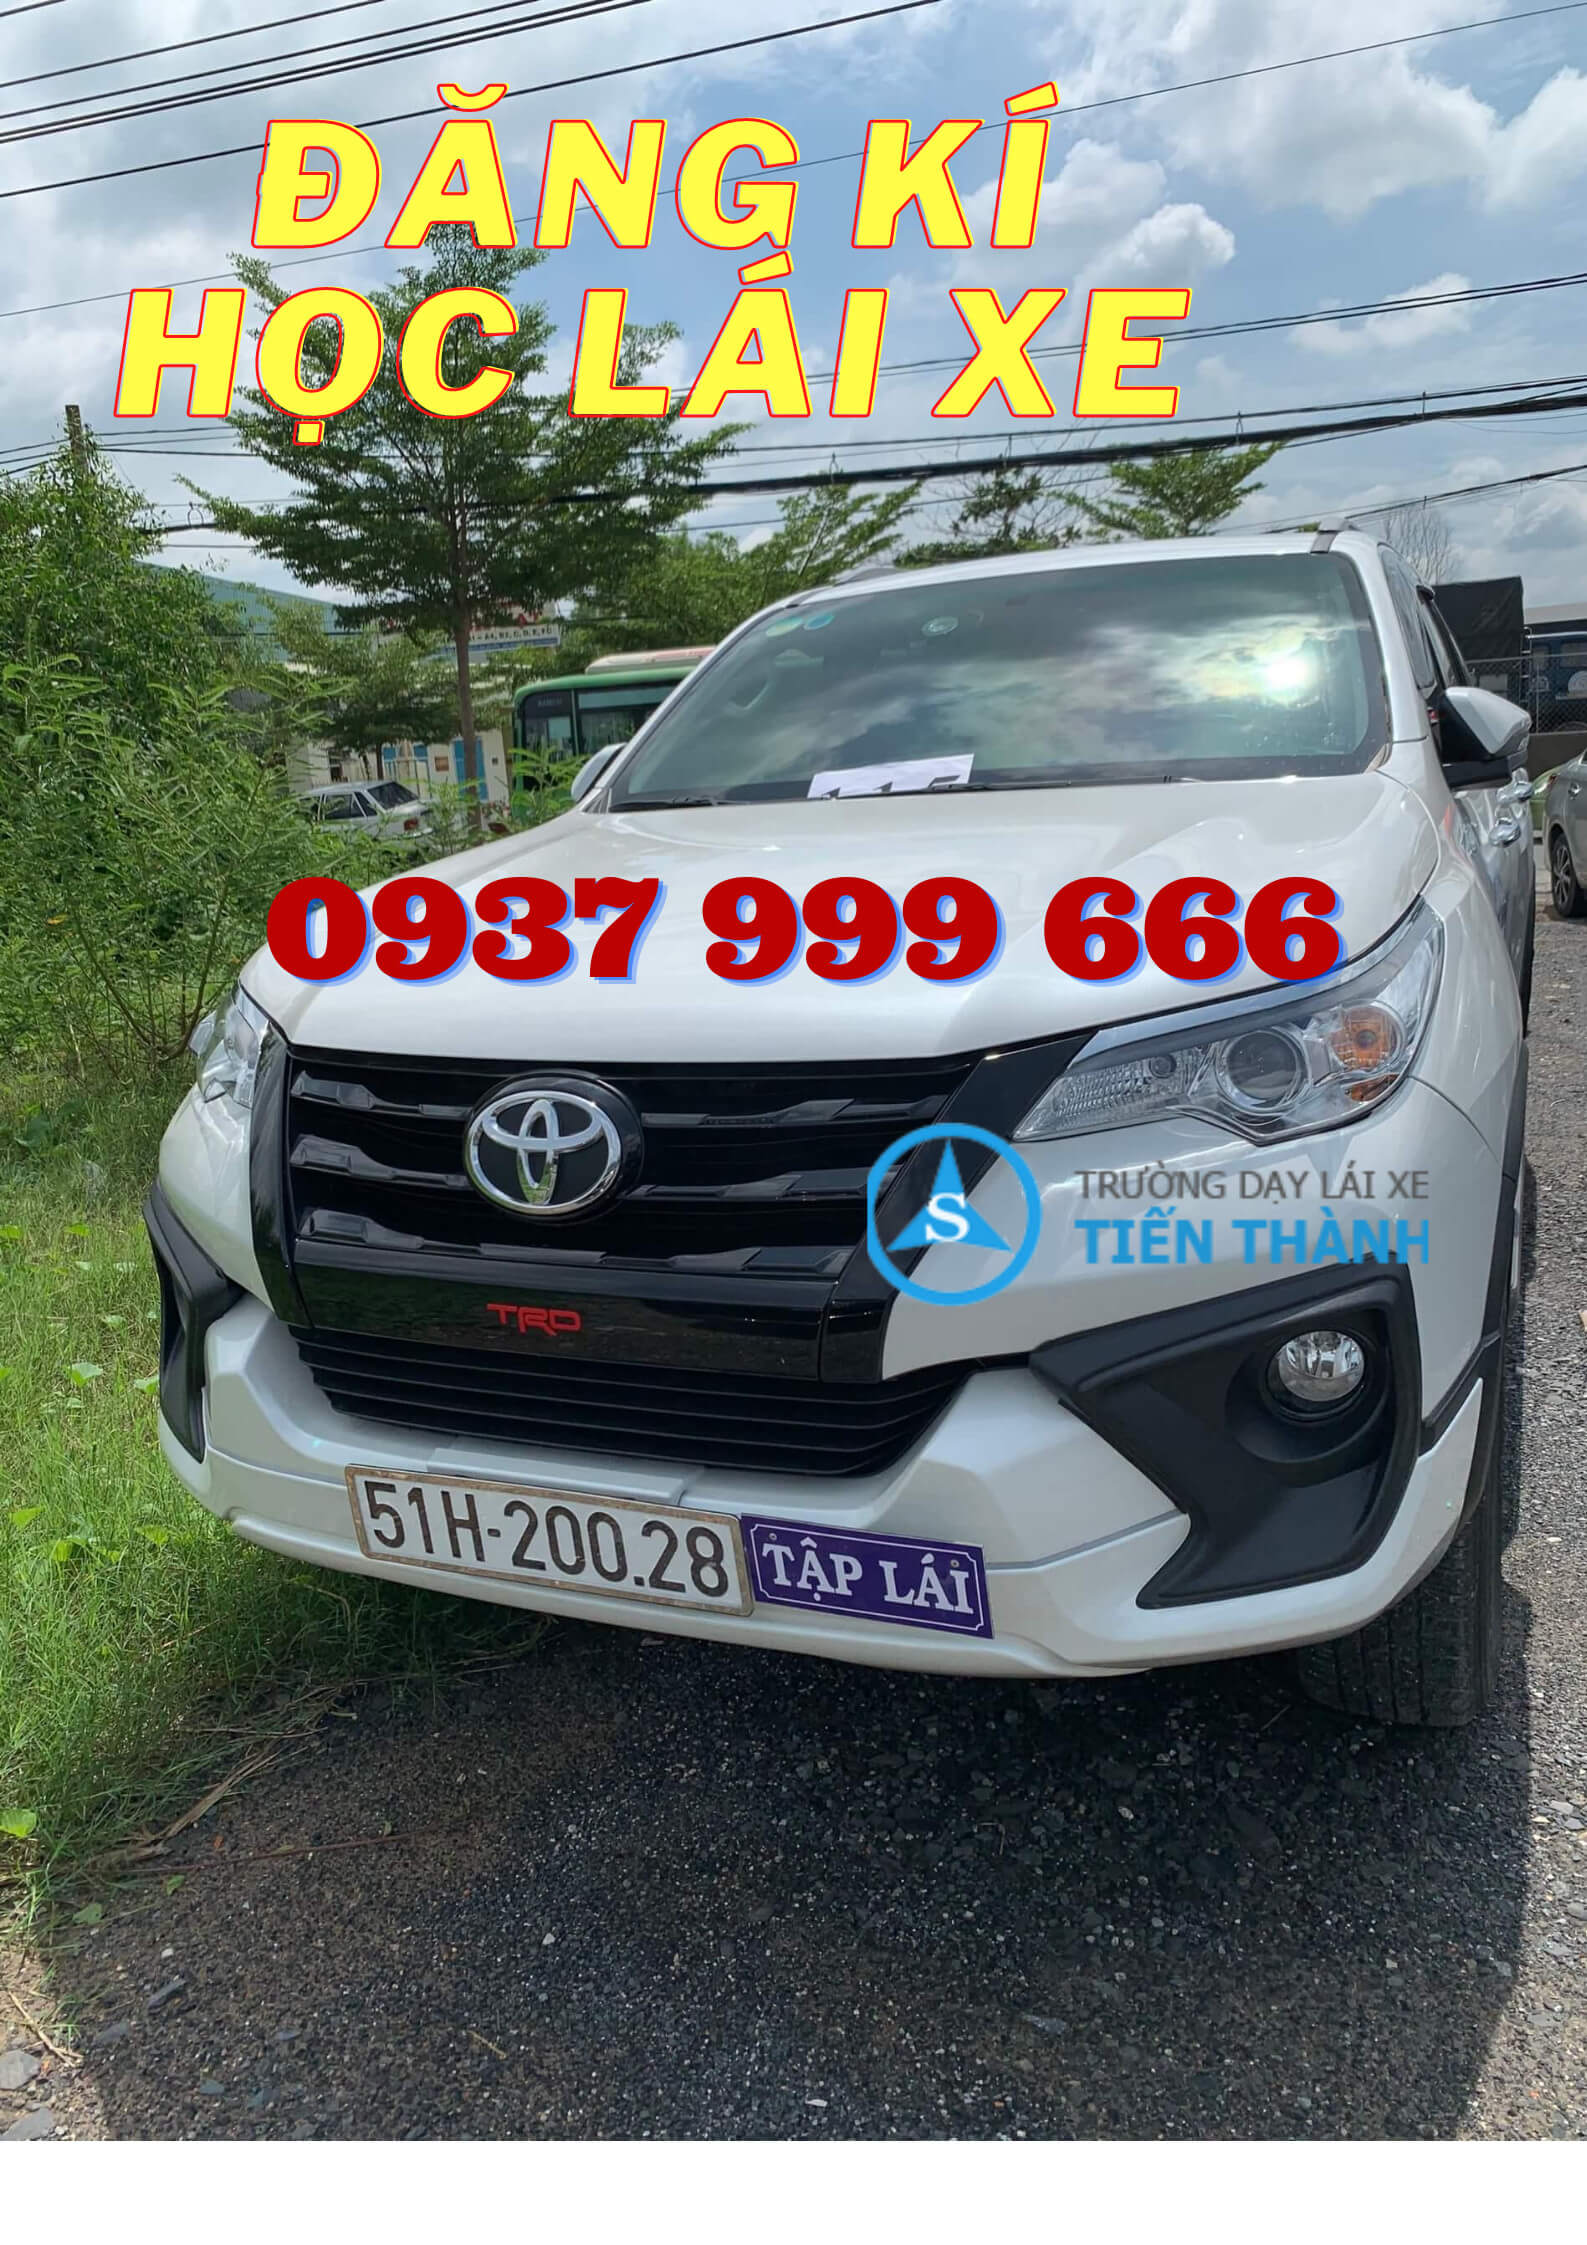 xe tap lai vip Tien thanh